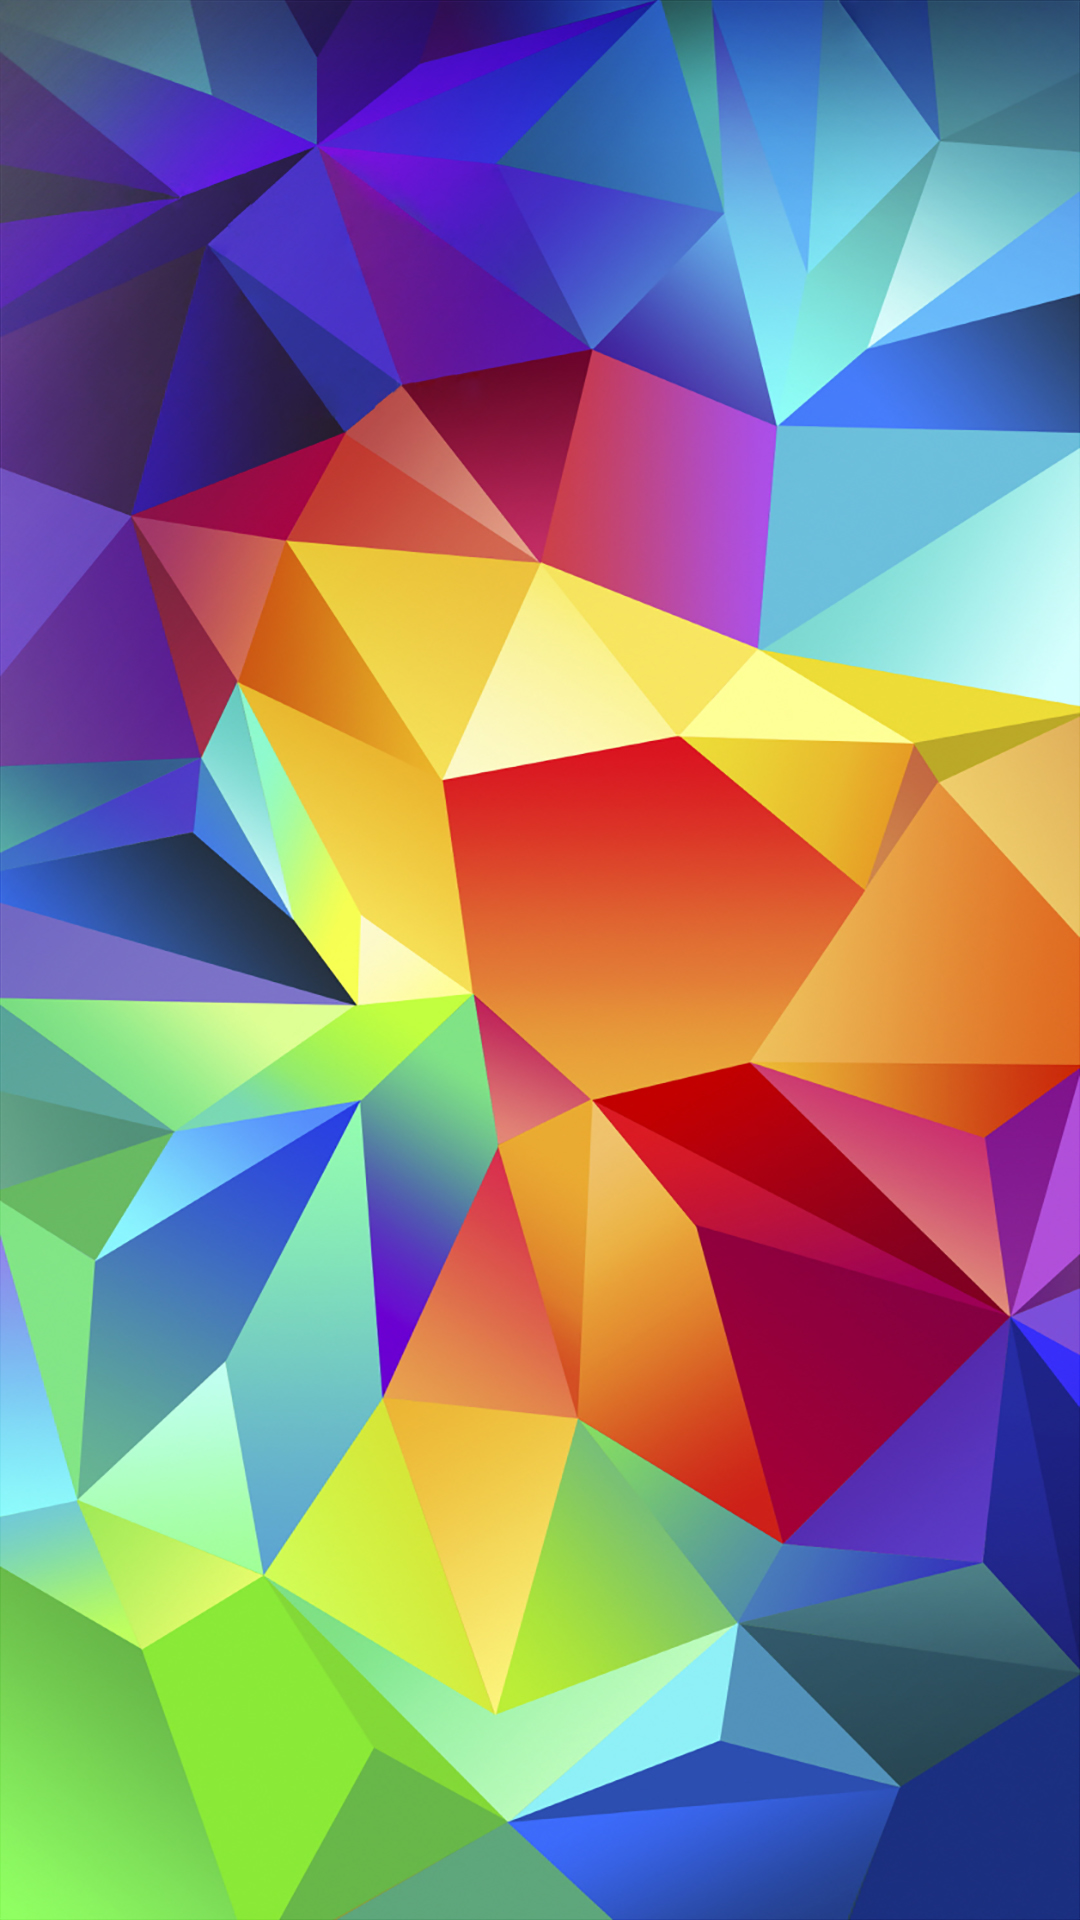 cell Phone Wallpapers for Samsung Samsung Galaxy S5 Blog 1080x1920